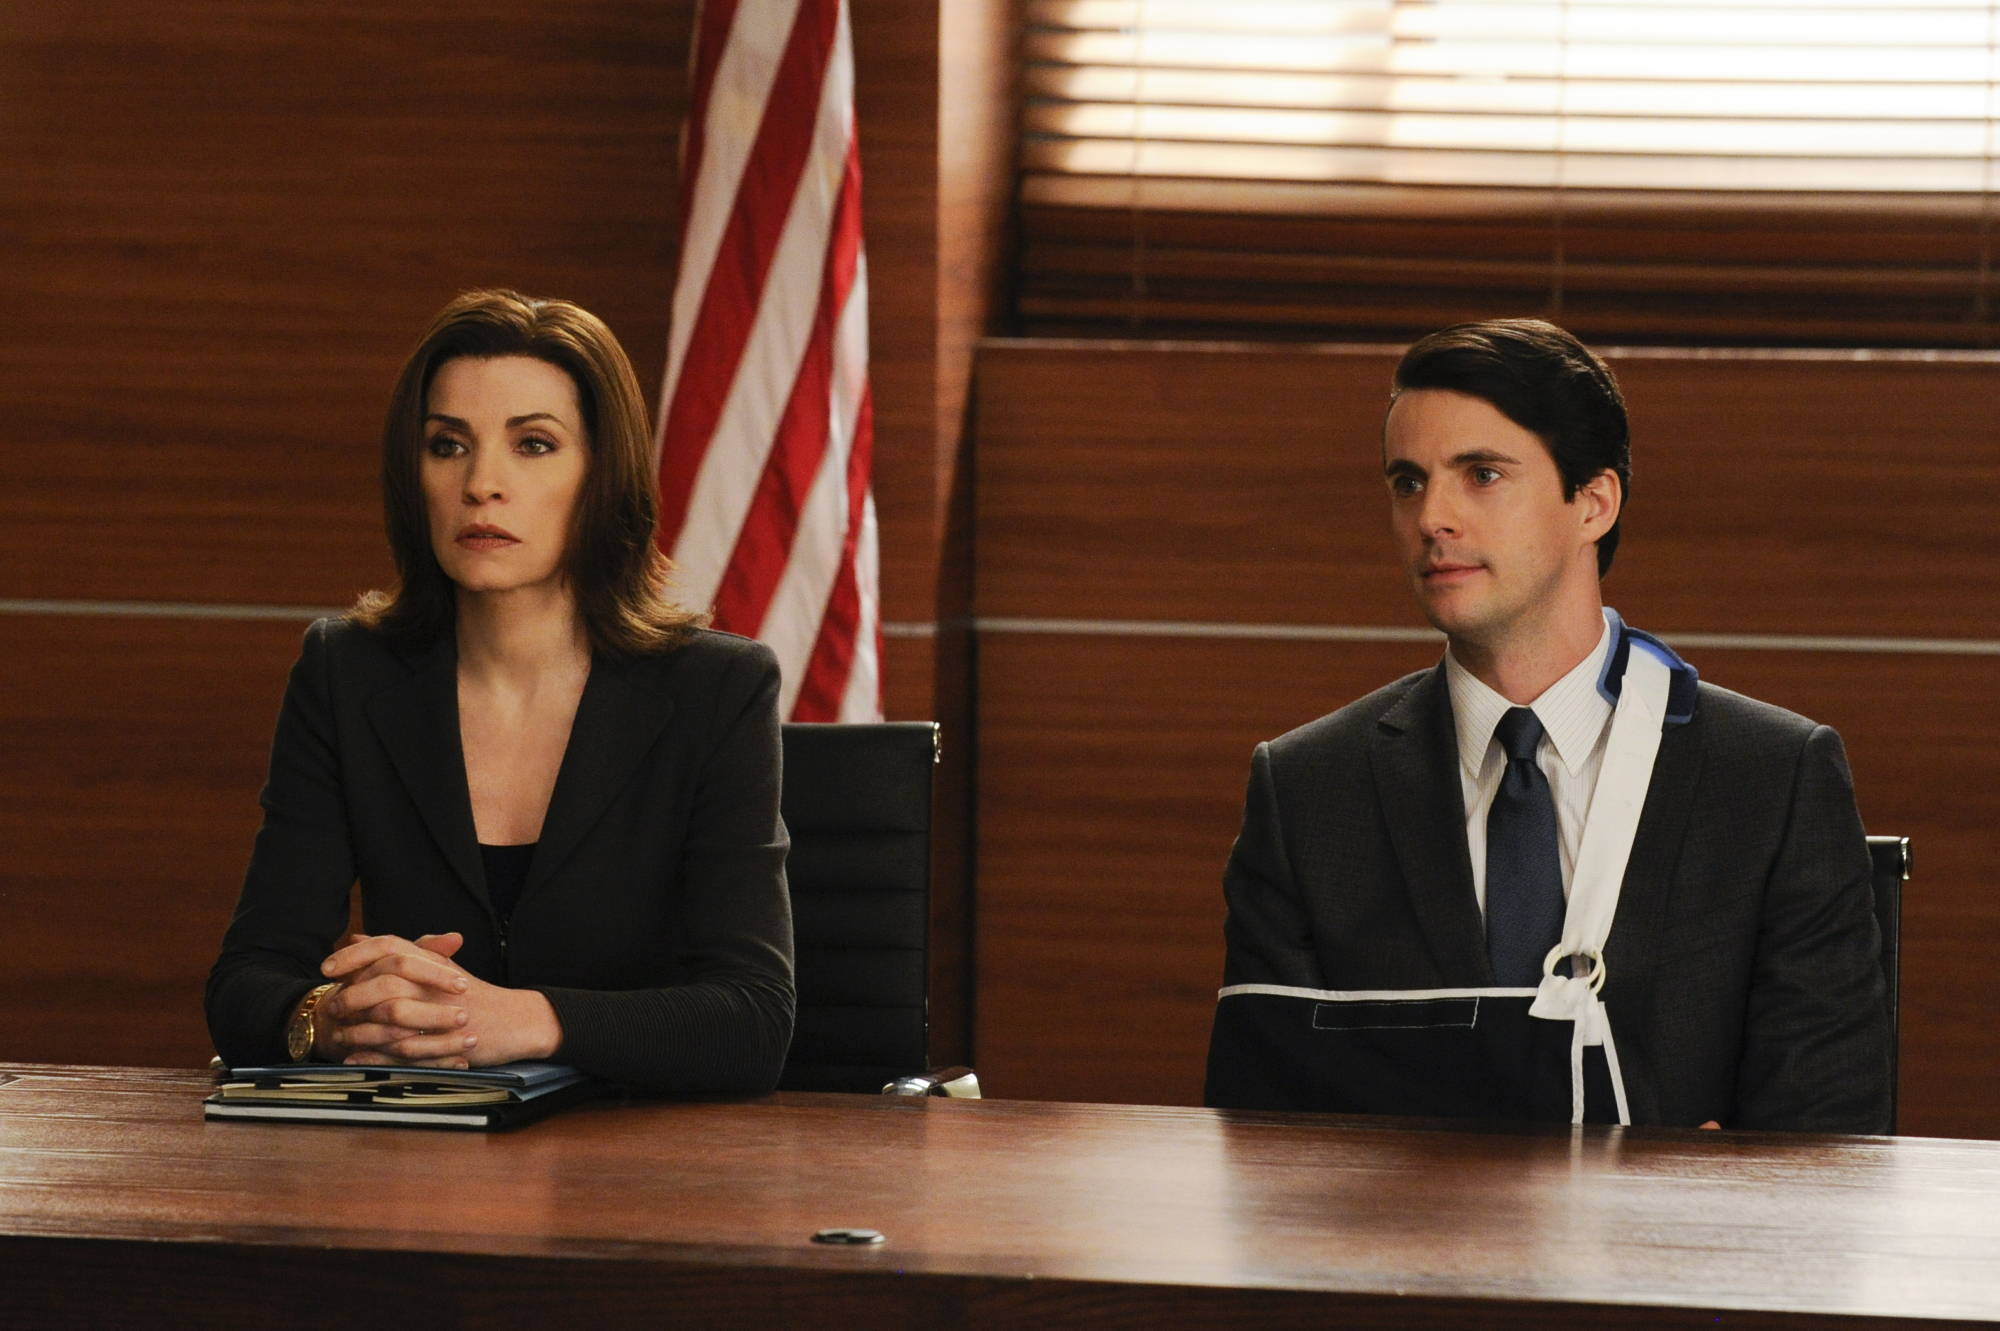 Finn hires Alicia as his lawyer in